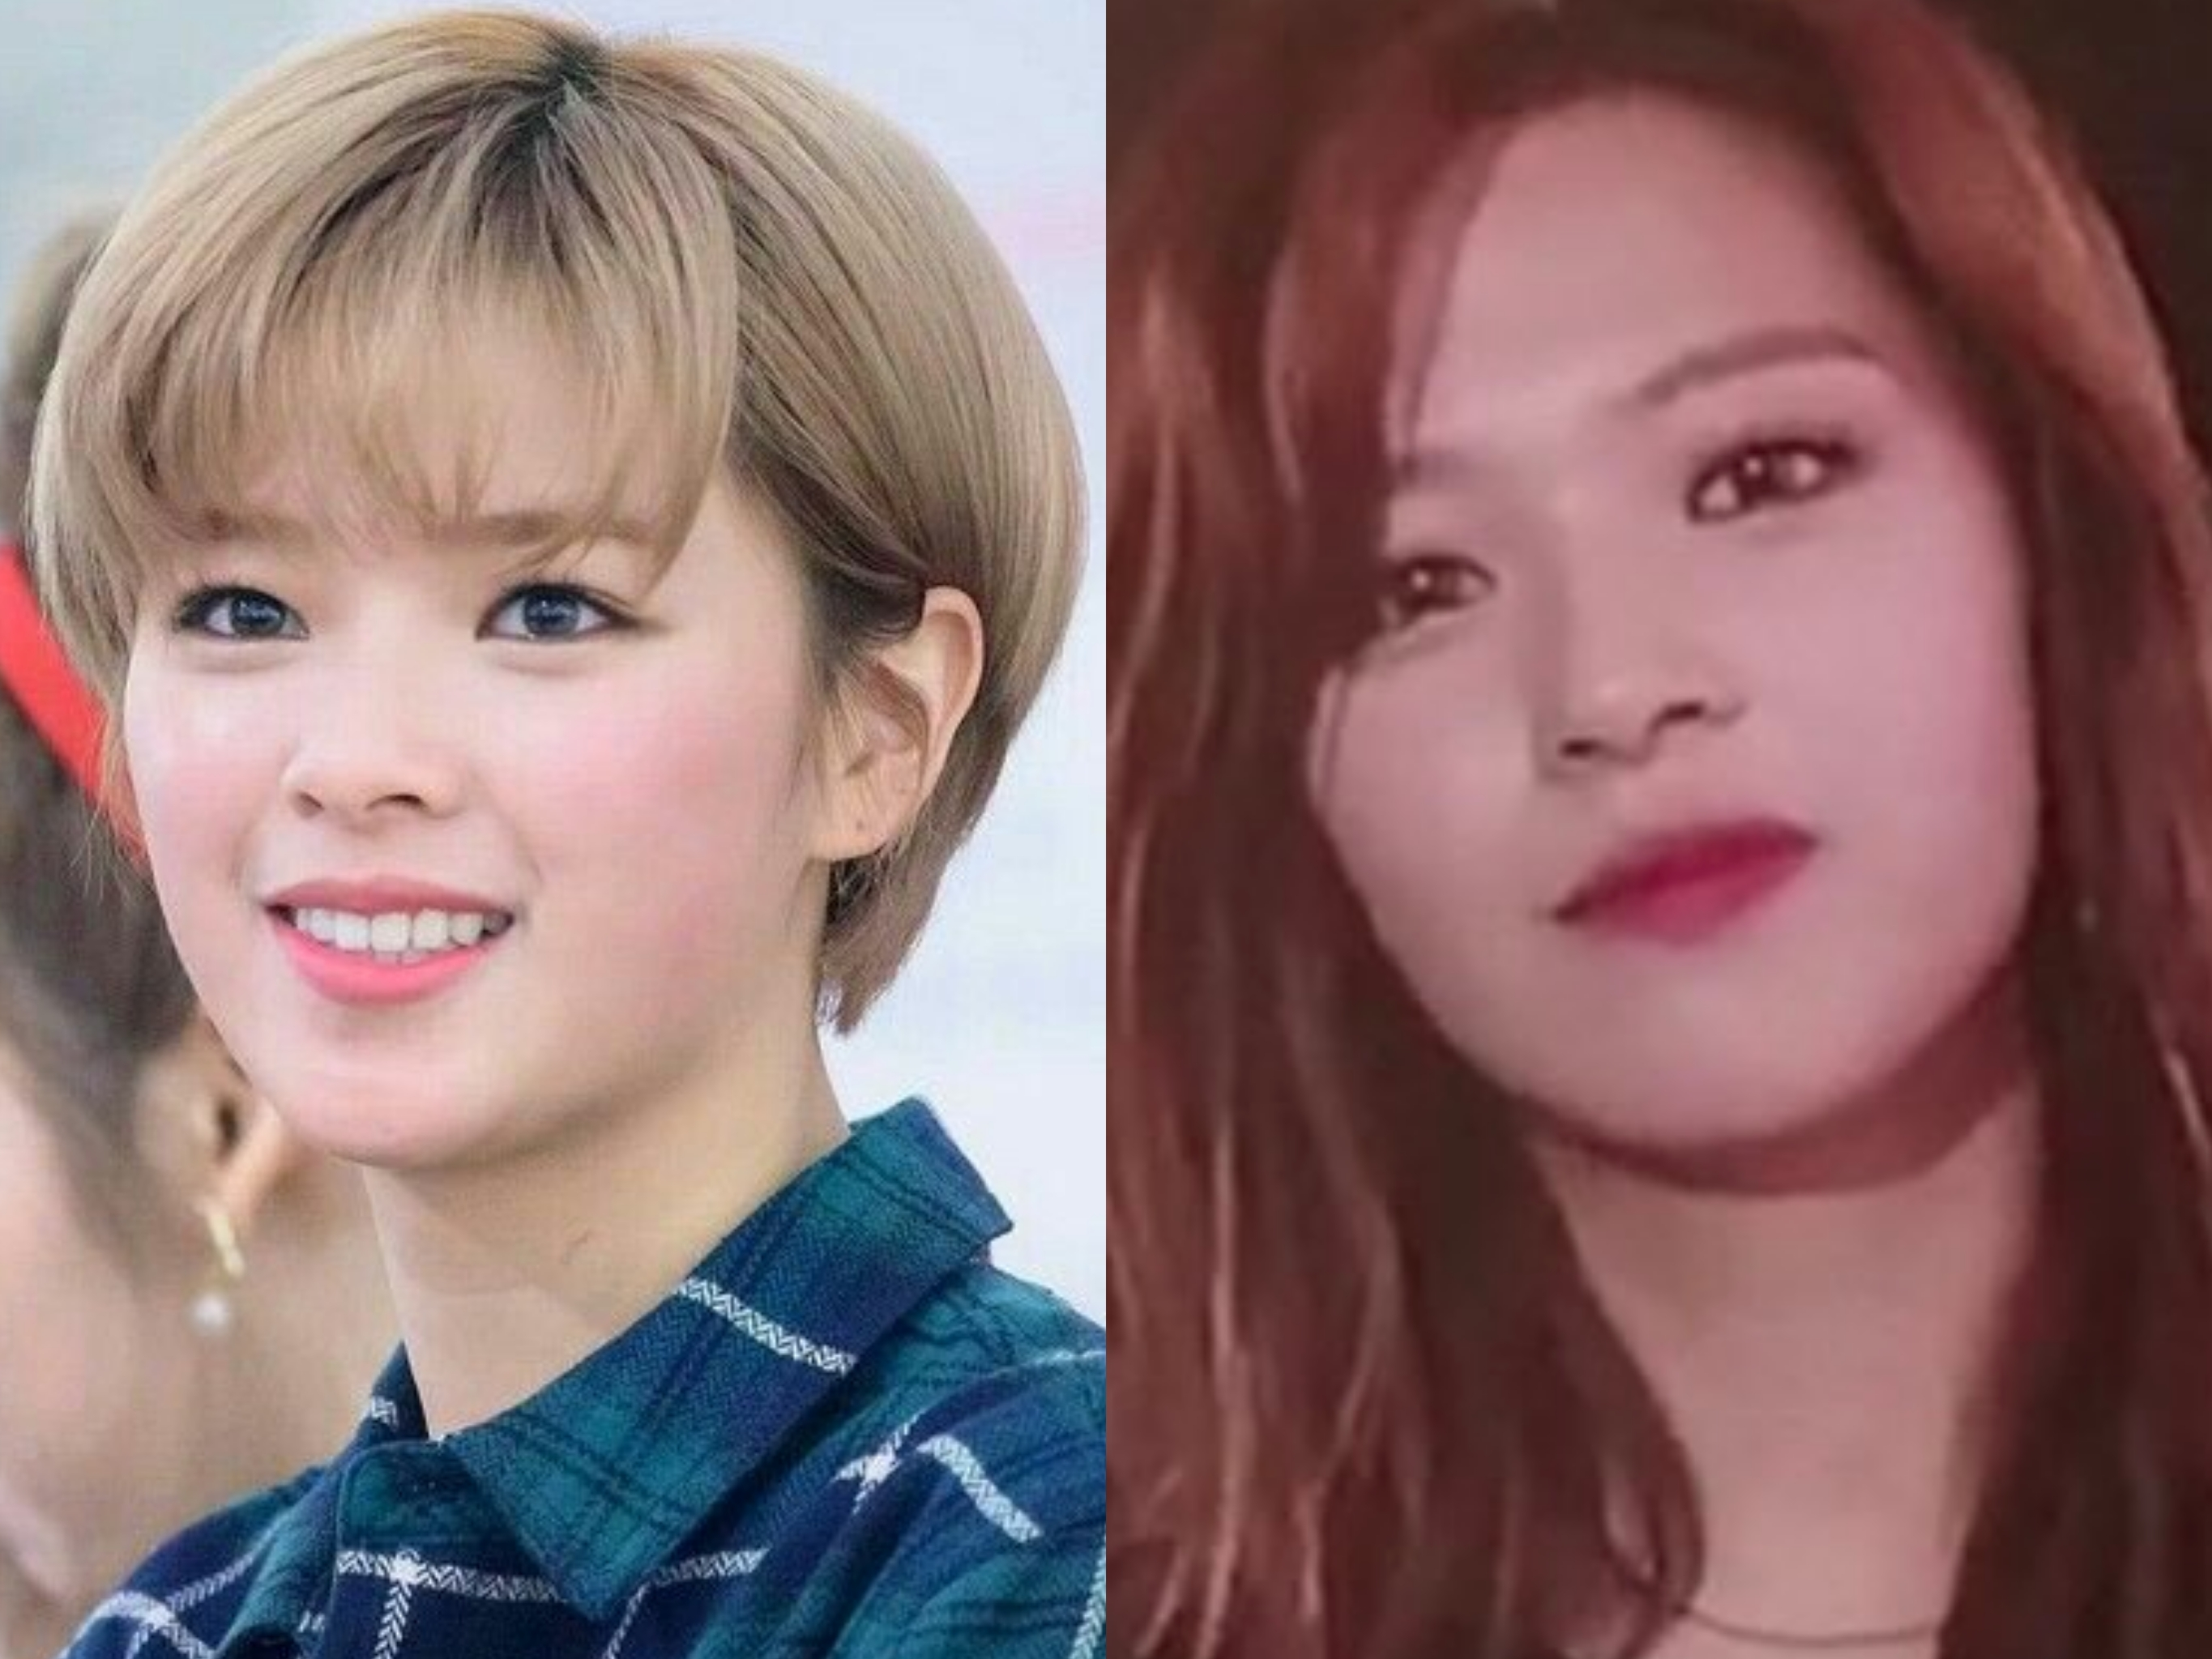 Which One You Prefer Jeongyeon With Long Hair Or Short Hair